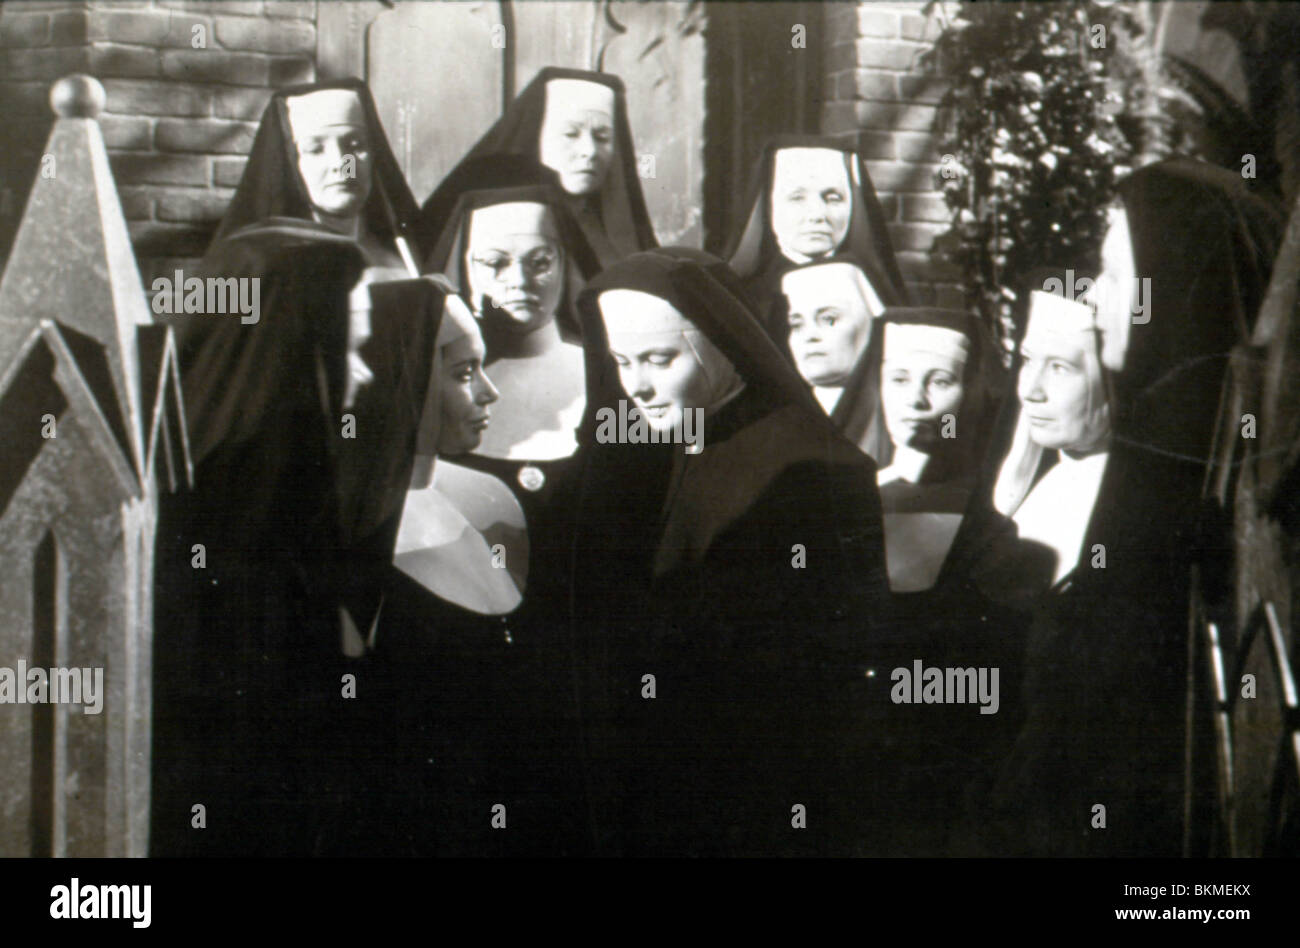 THE BELL'S OF ST MARY'S (1945) INGRID BERGMAN BSMY 002 - Stock Image